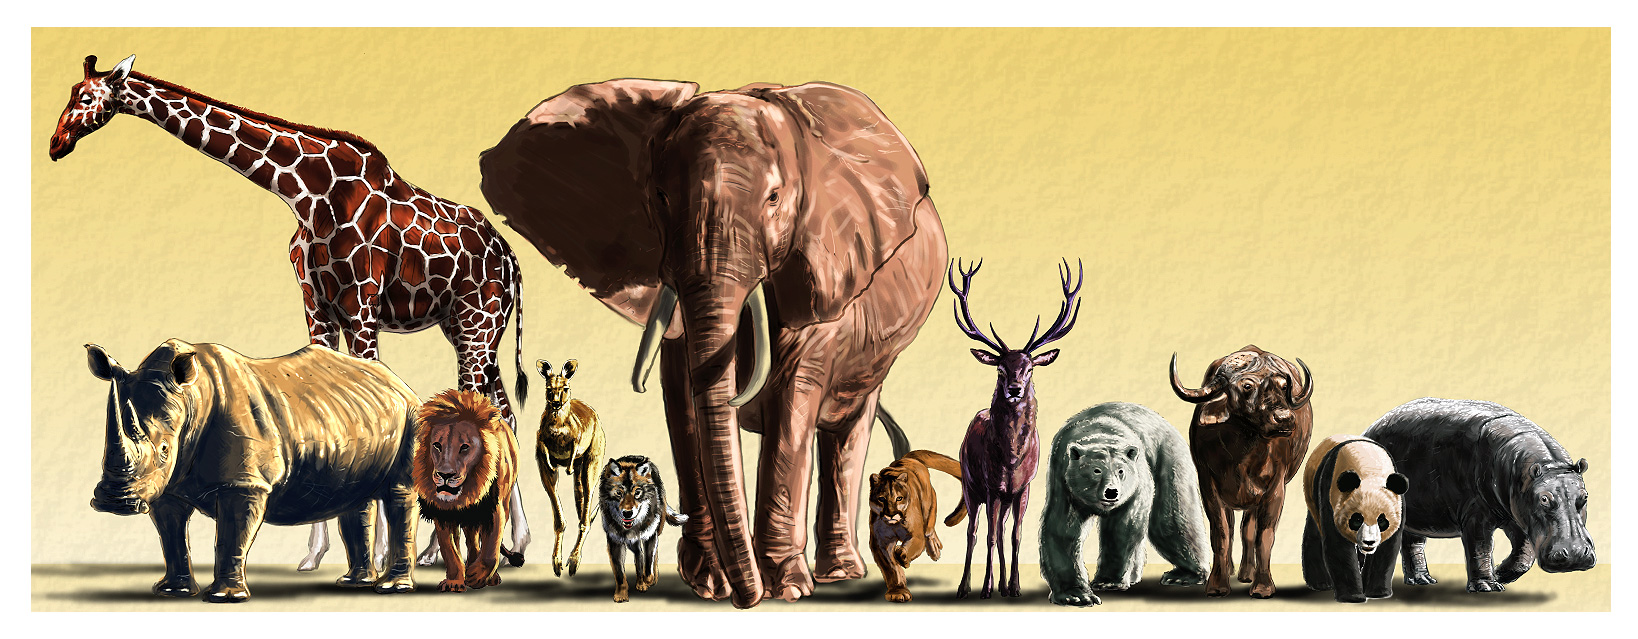 takino chatrooms Takino yumiko (yumirin) discussion in 'stu48 members' started by ithebigc, may 9, 2017.